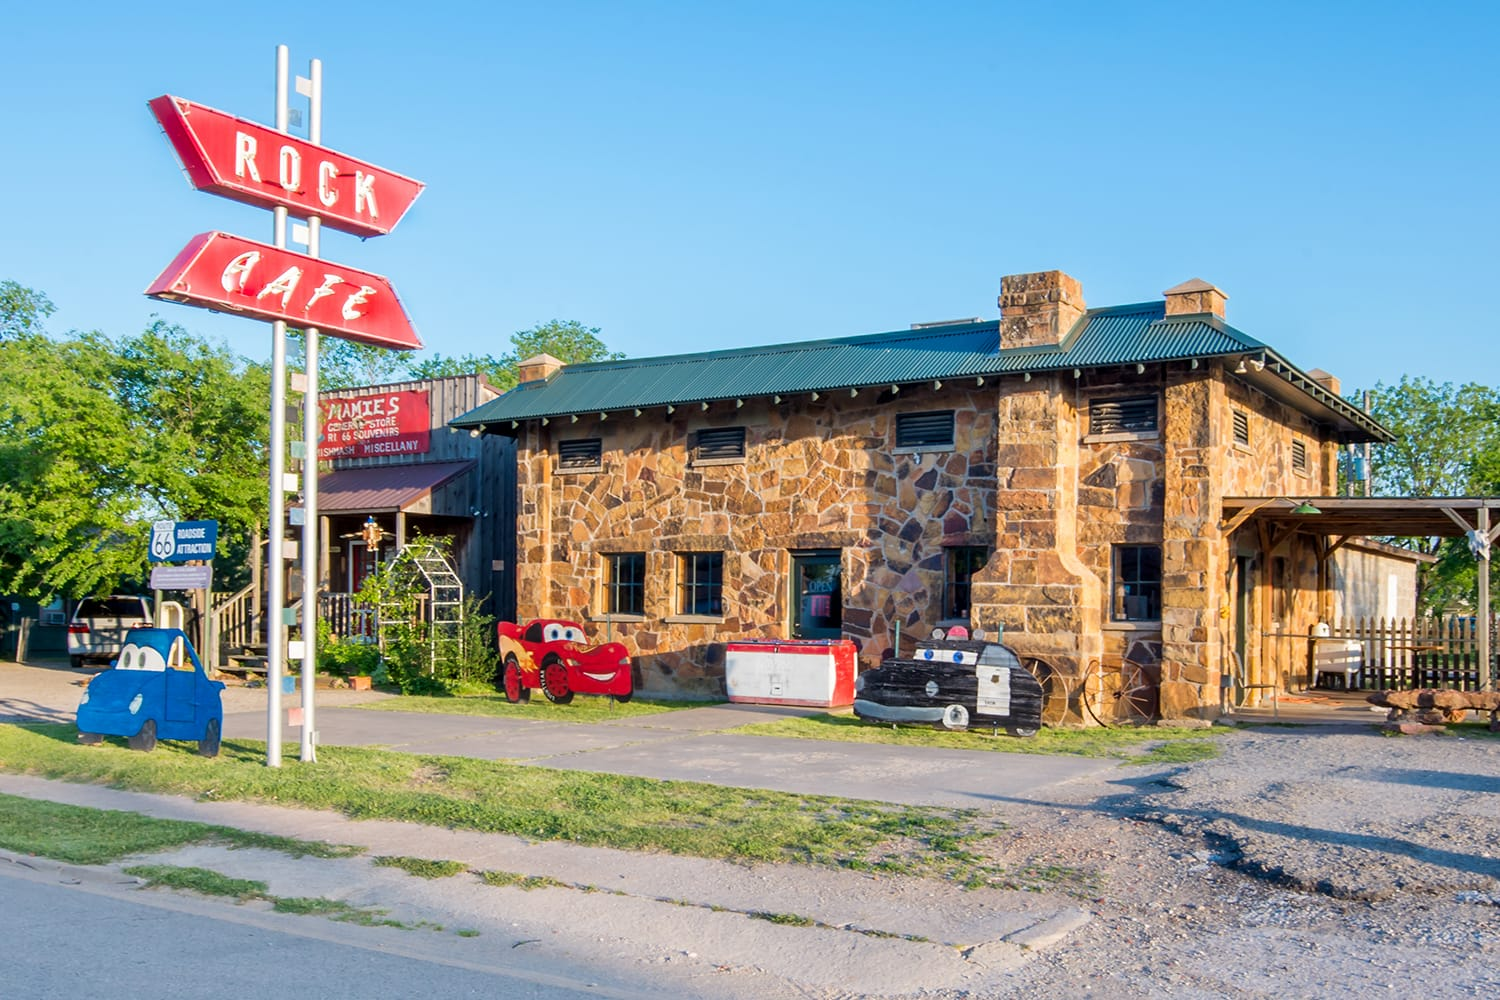 Historic Rock Cafe and neon sign, on Route 66 in Stroud, Oklahoma